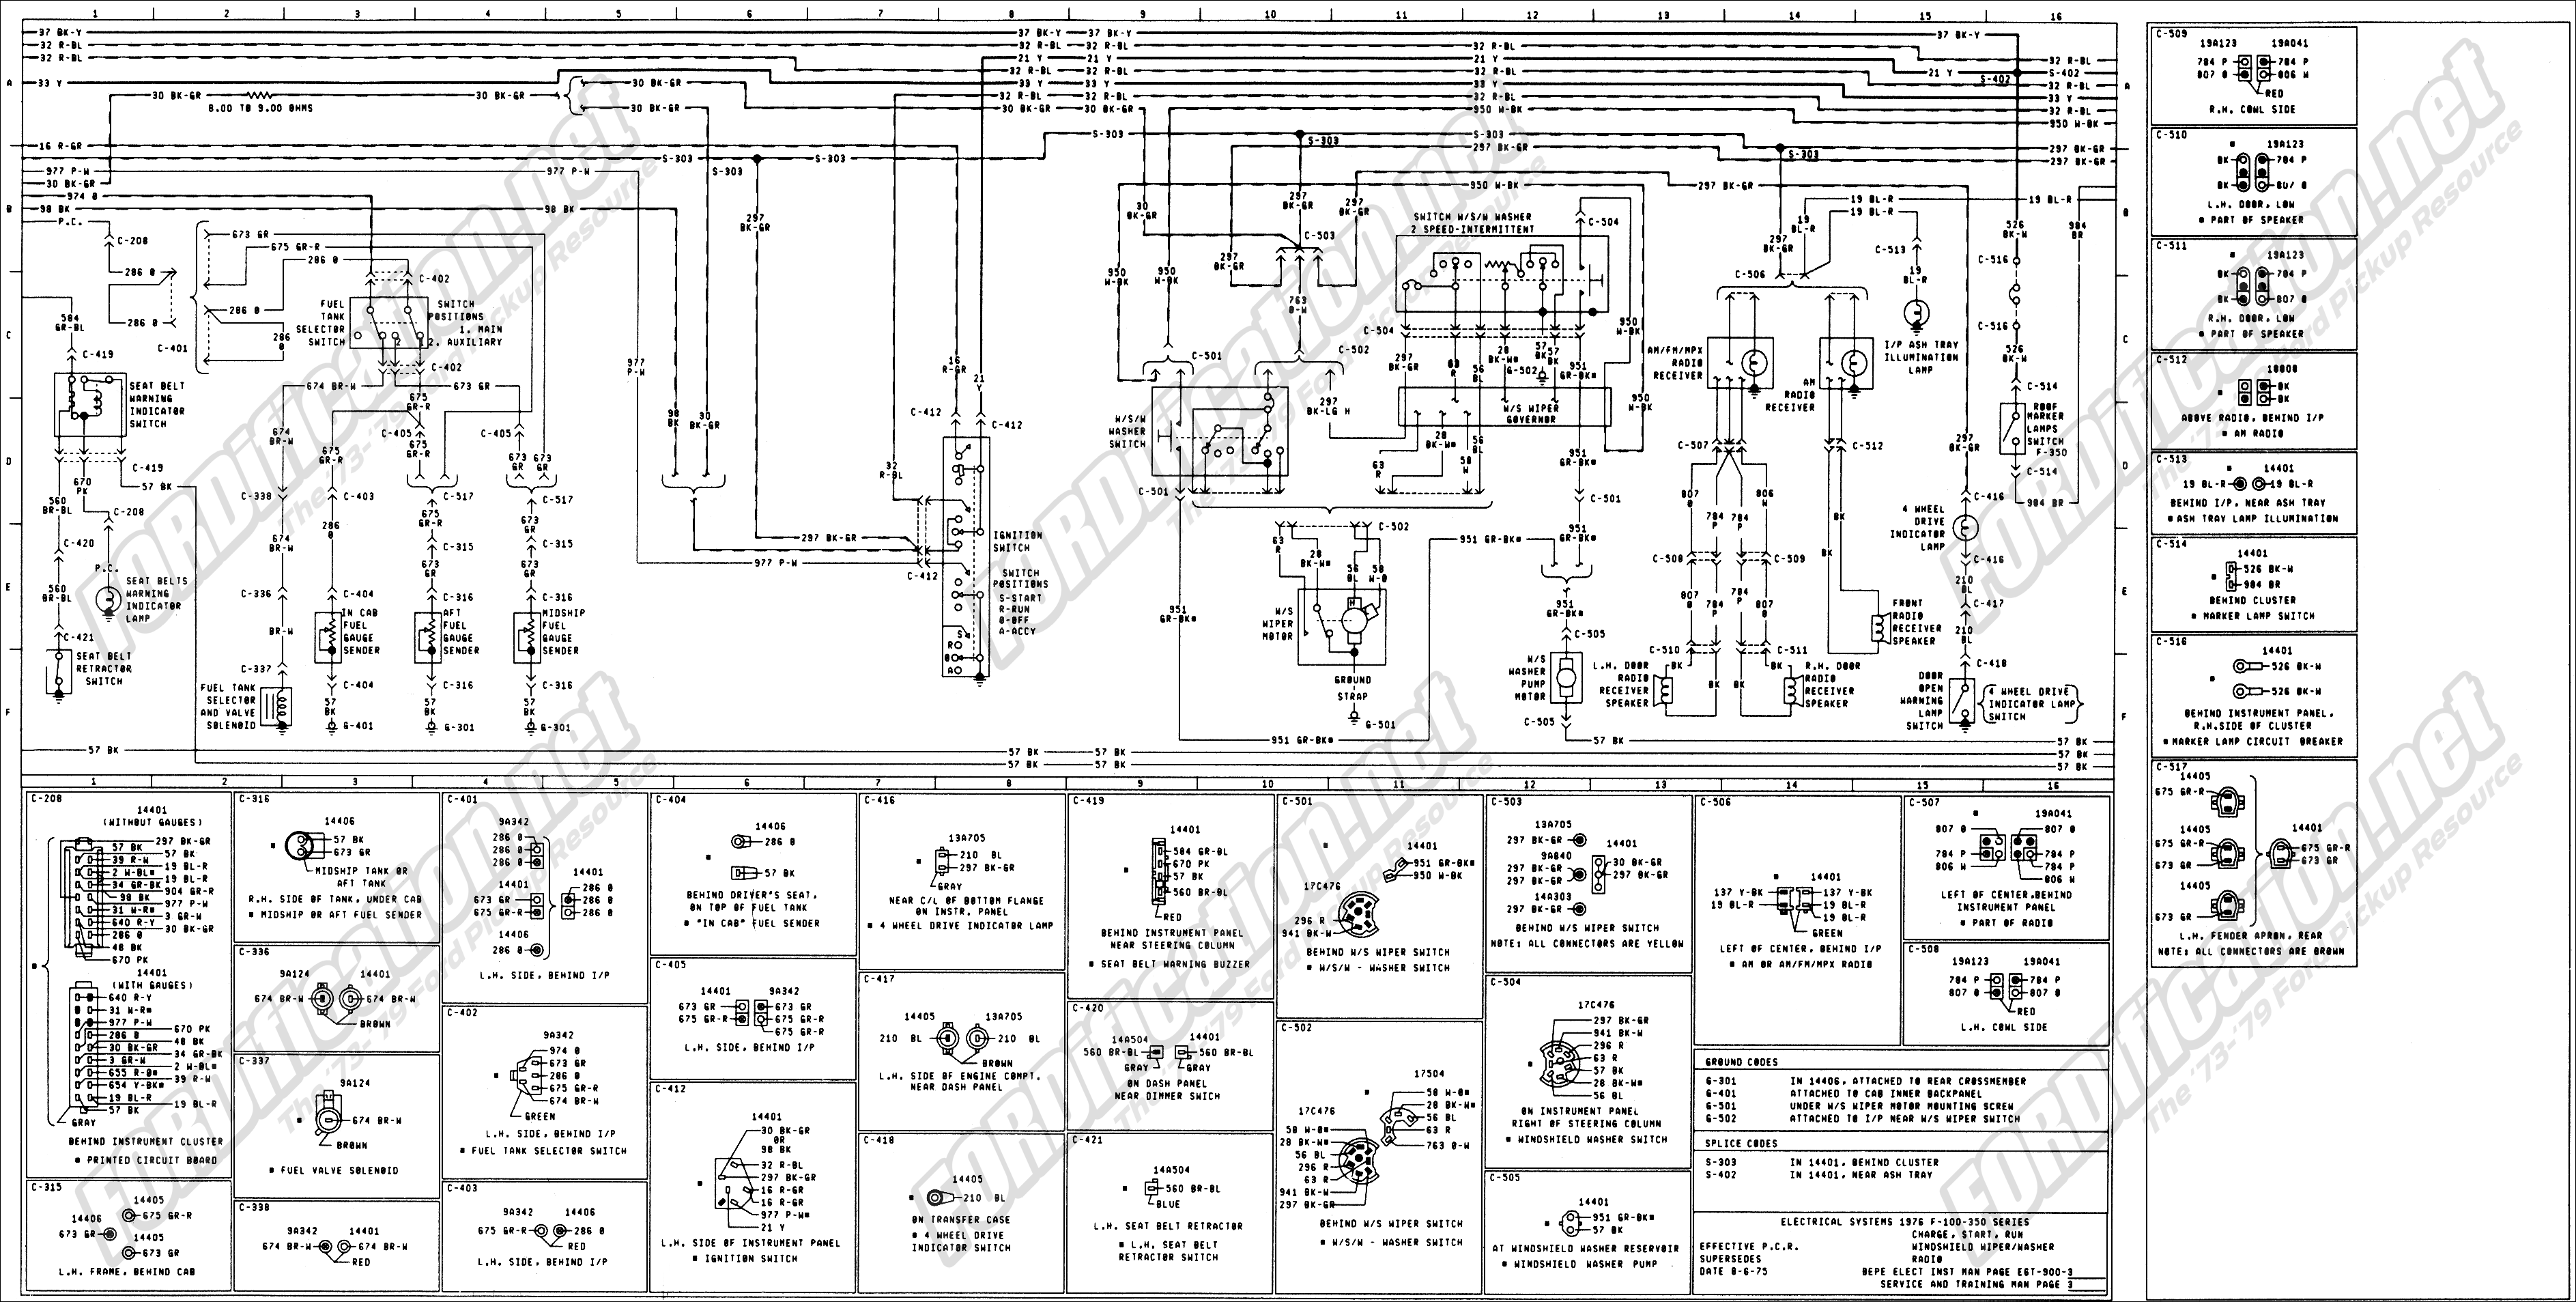 wiring_76master_3of9 1973 1979 ford truck wiring diagrams & schematics fordification net 1996 ford f250 wiring diagram at readyjetset.co